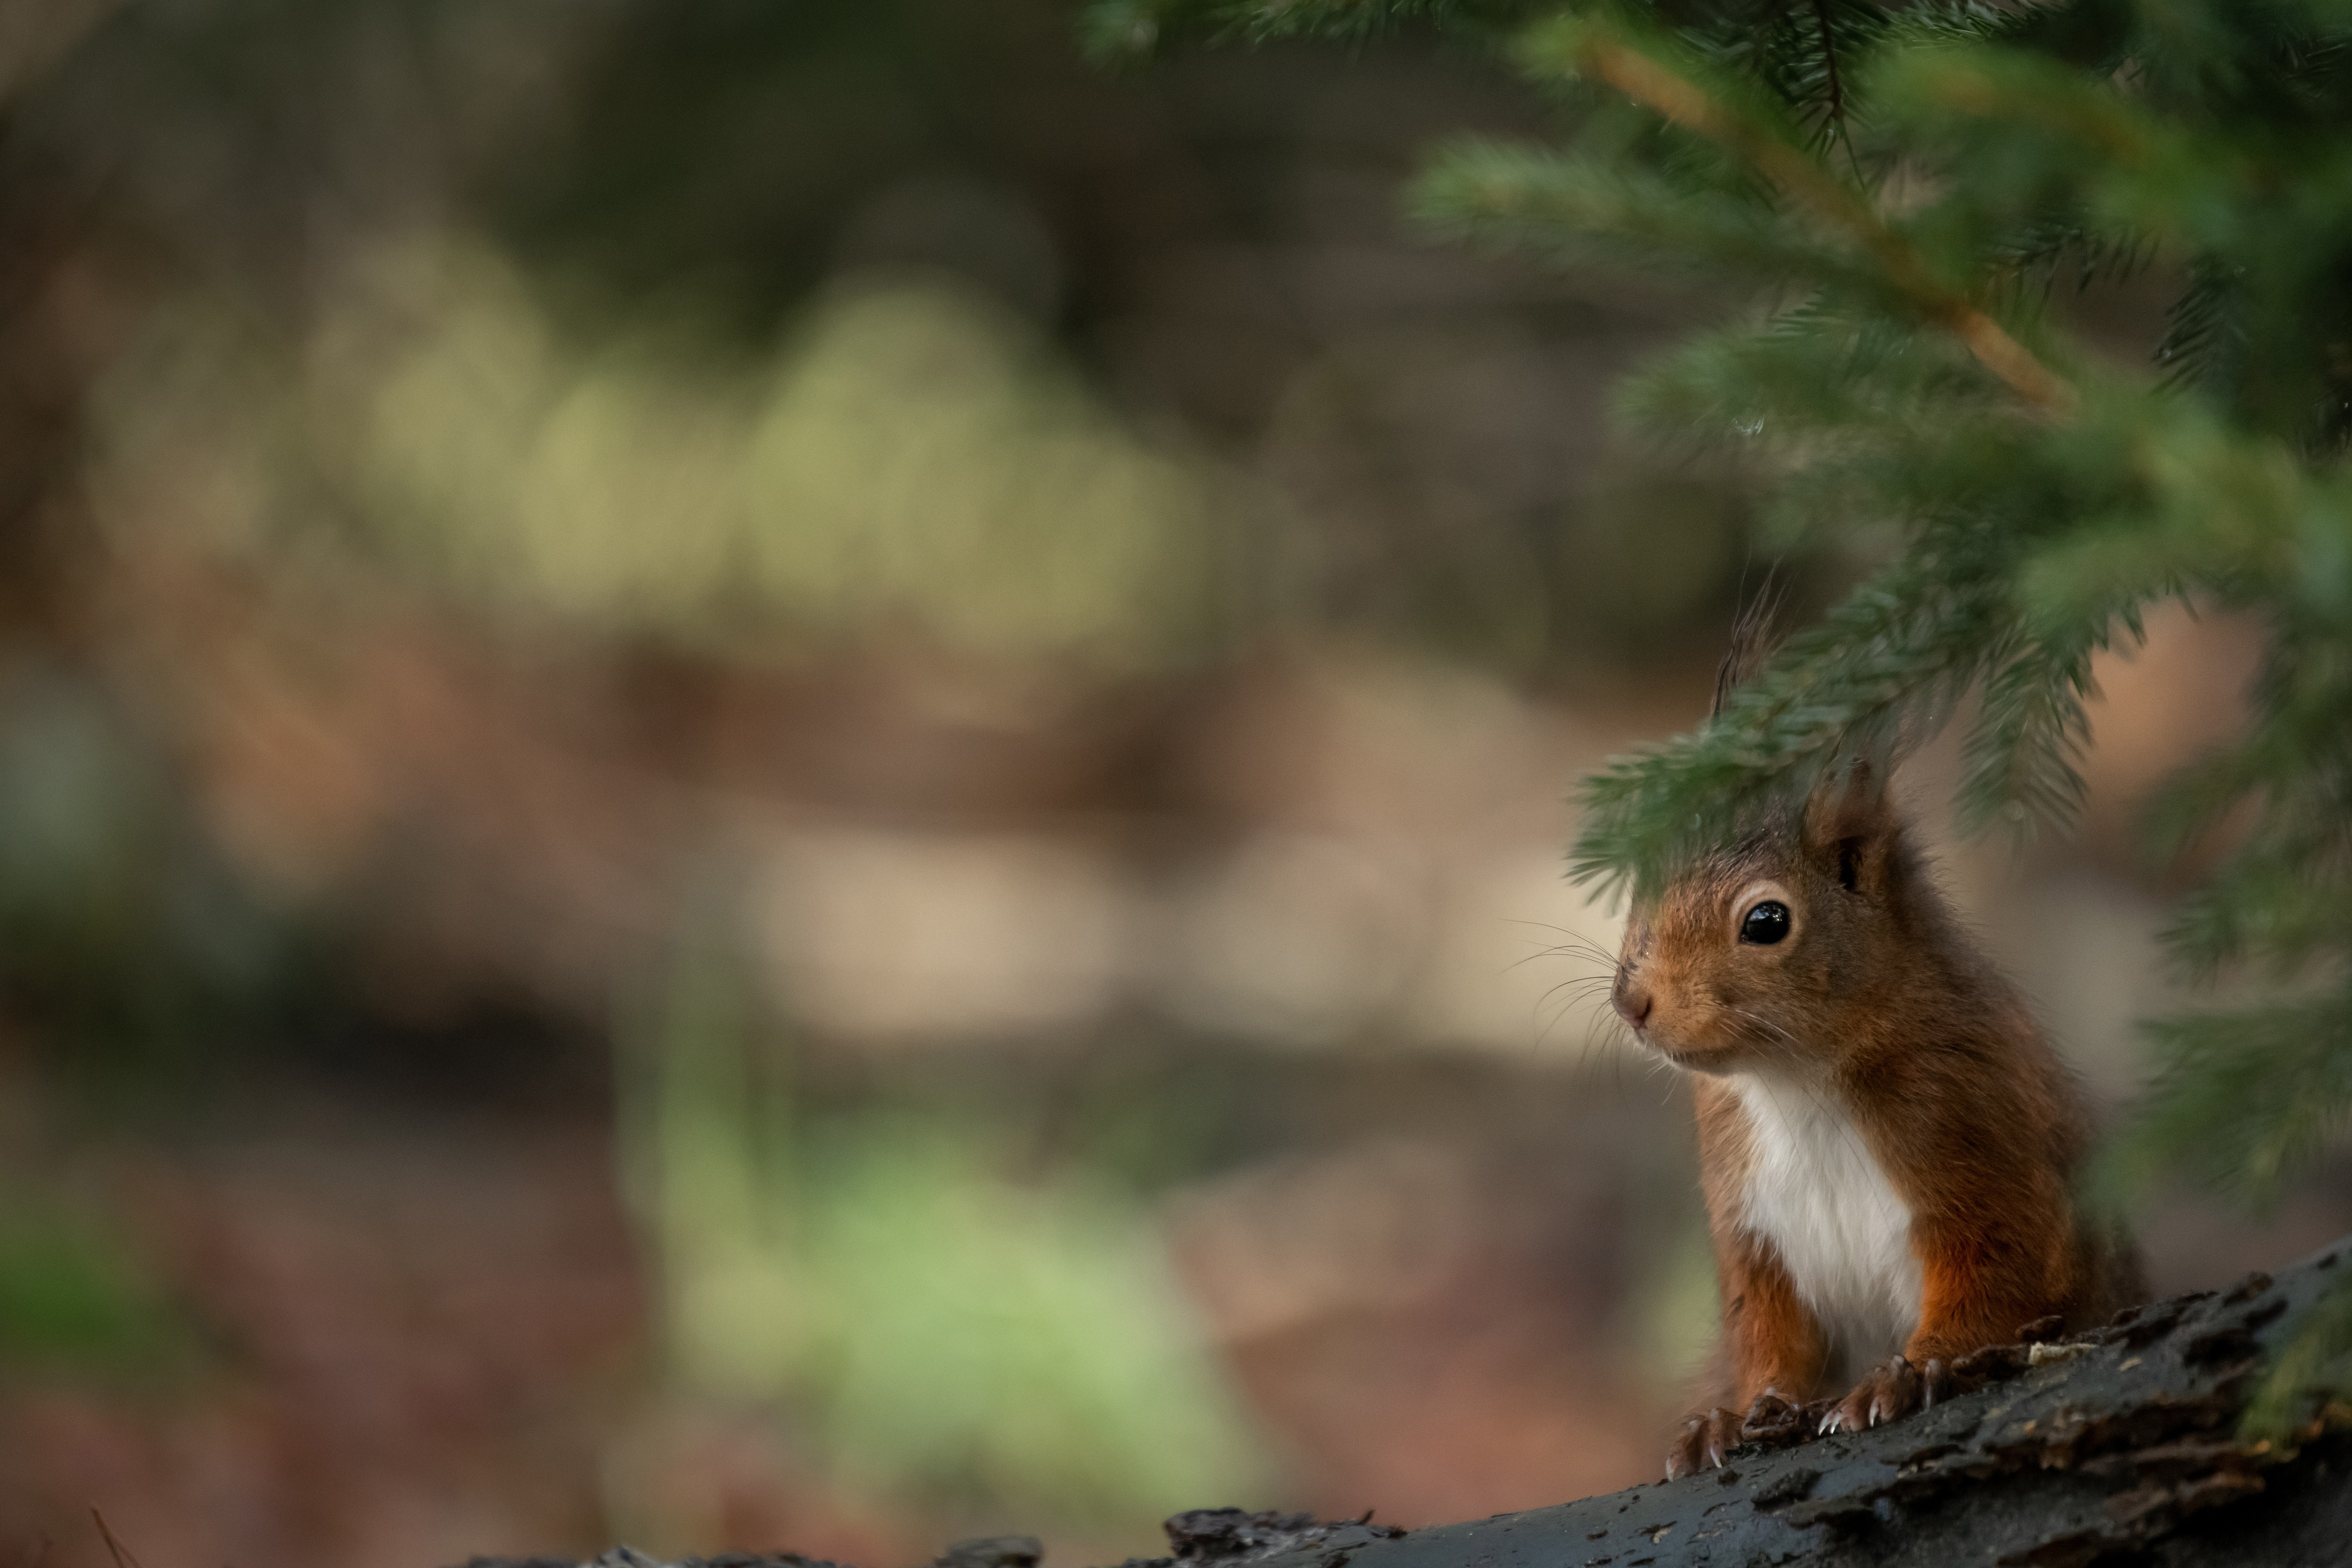 94126 download wallpaper Animals, Squirrel, Brown, Branch, Animal screensavers and pictures for free